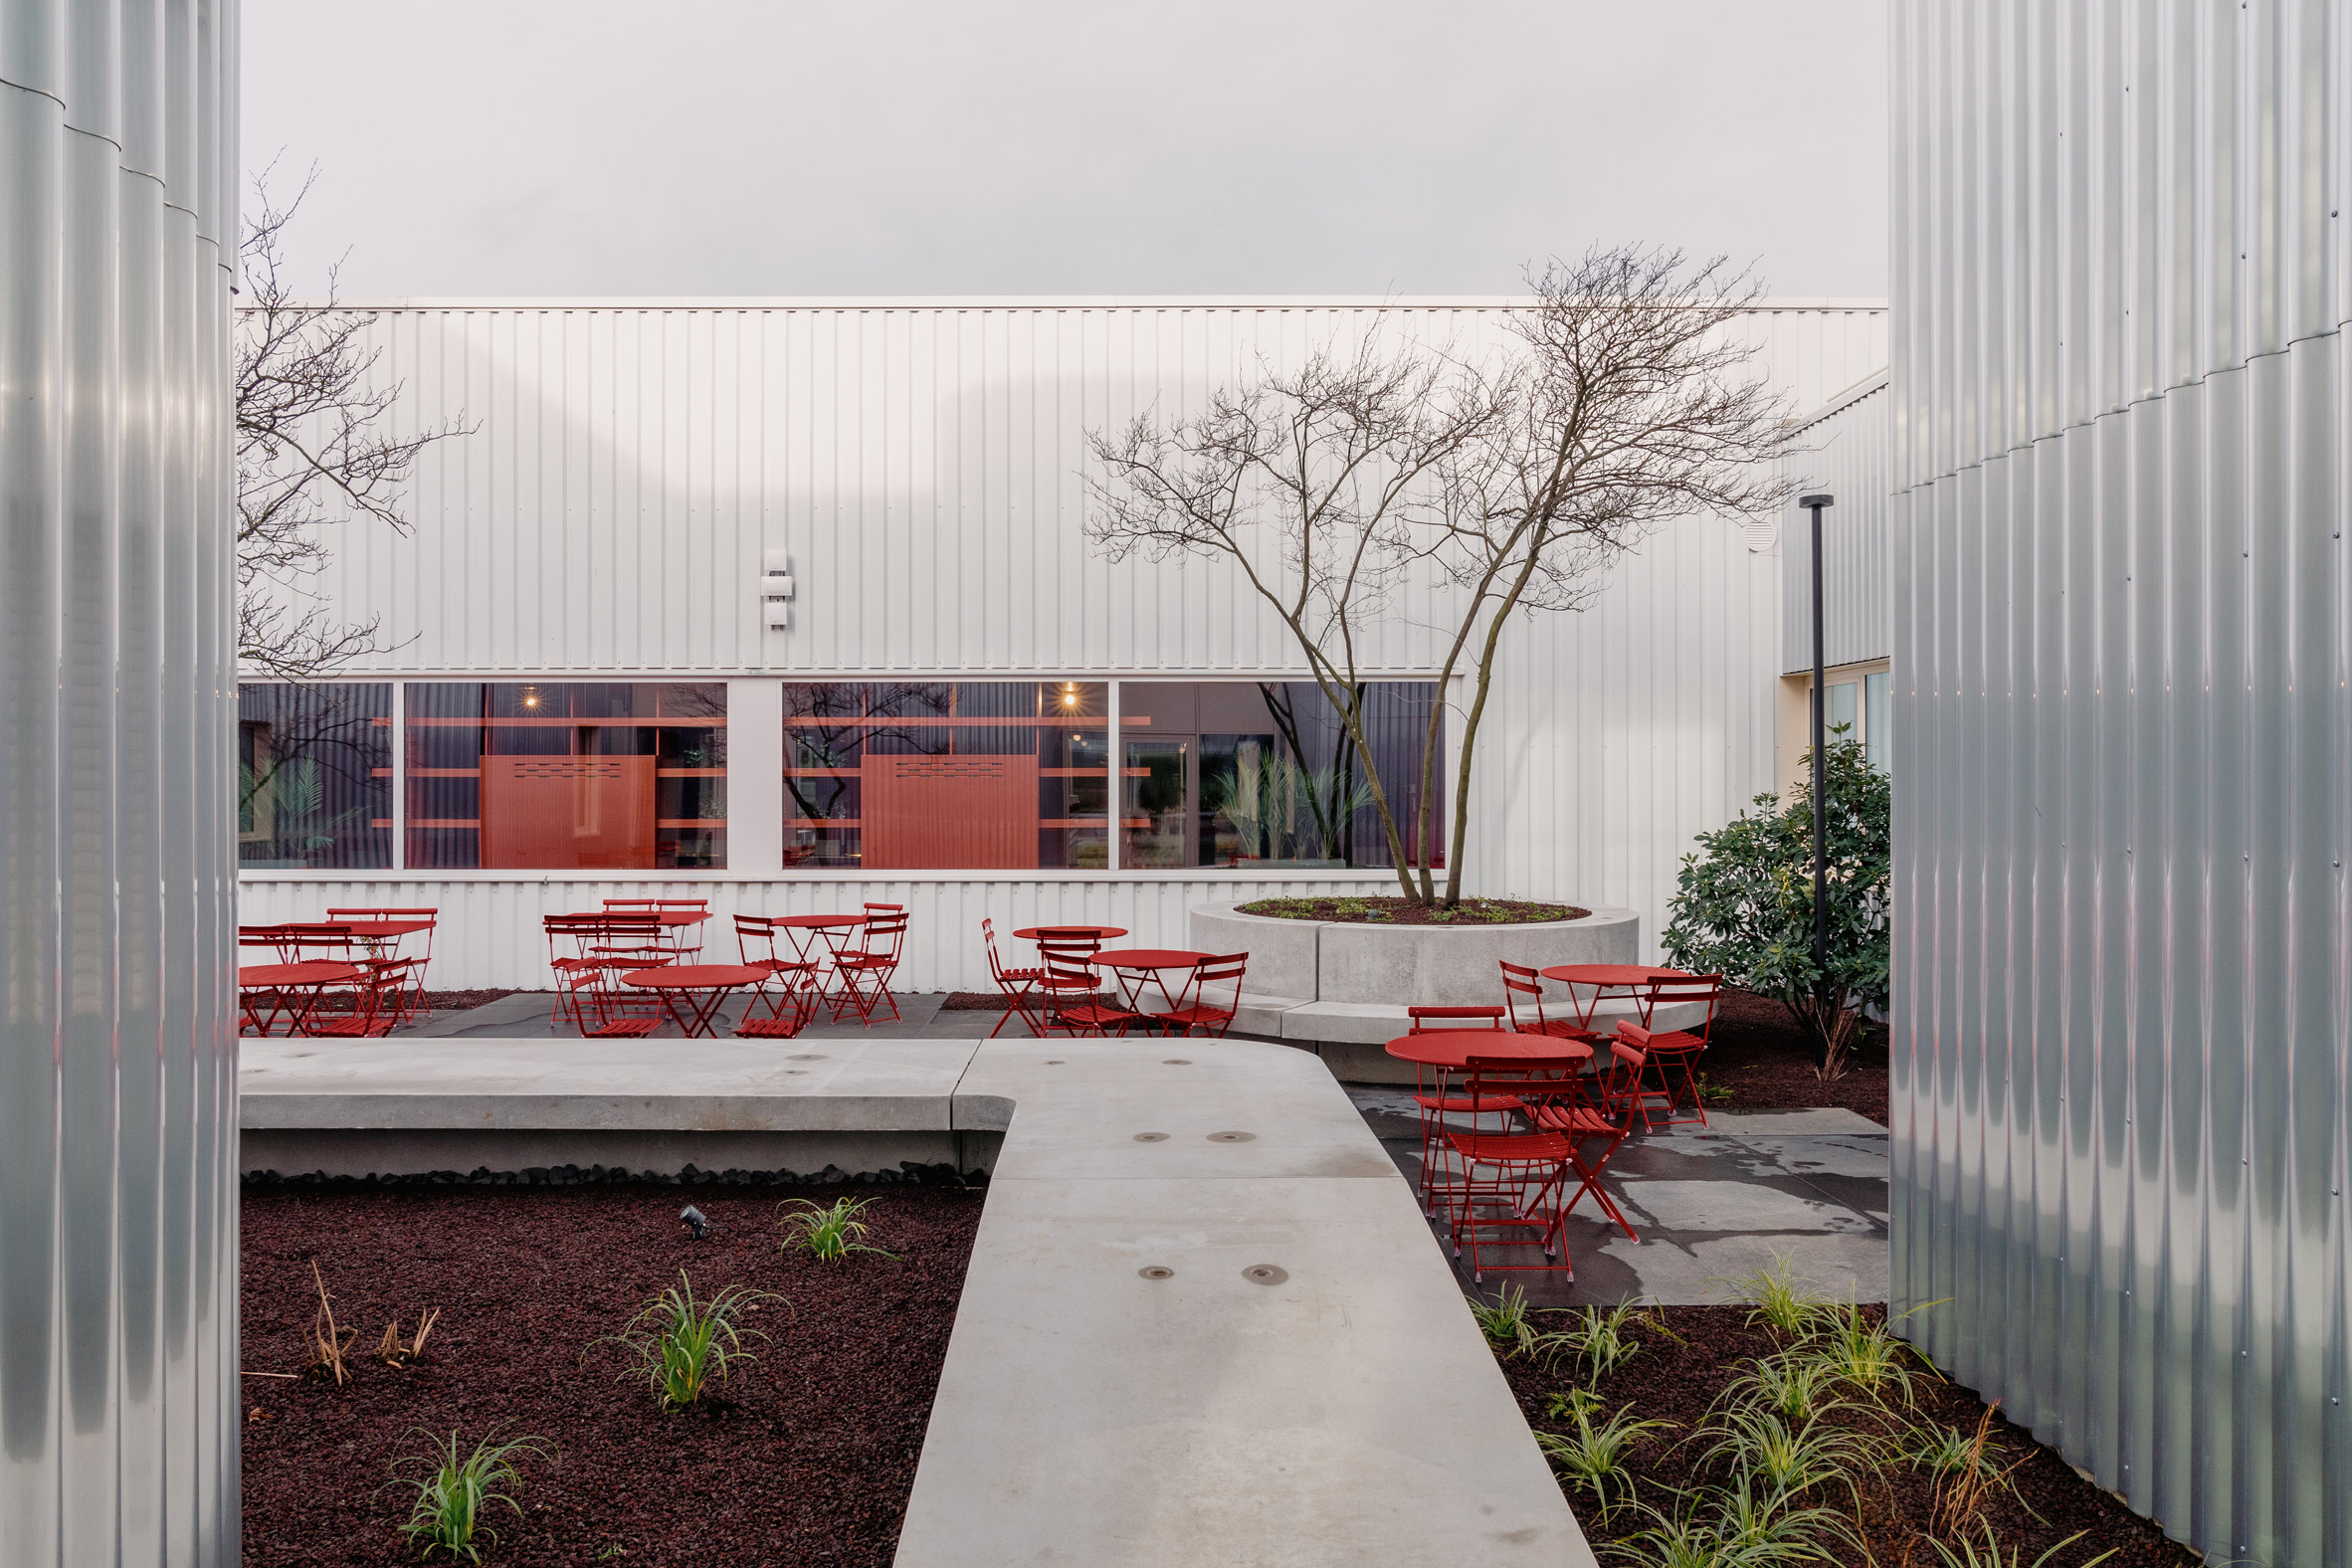 The courtyard has red furniture and wild landscaping by Studio Anton Hendrik Denys